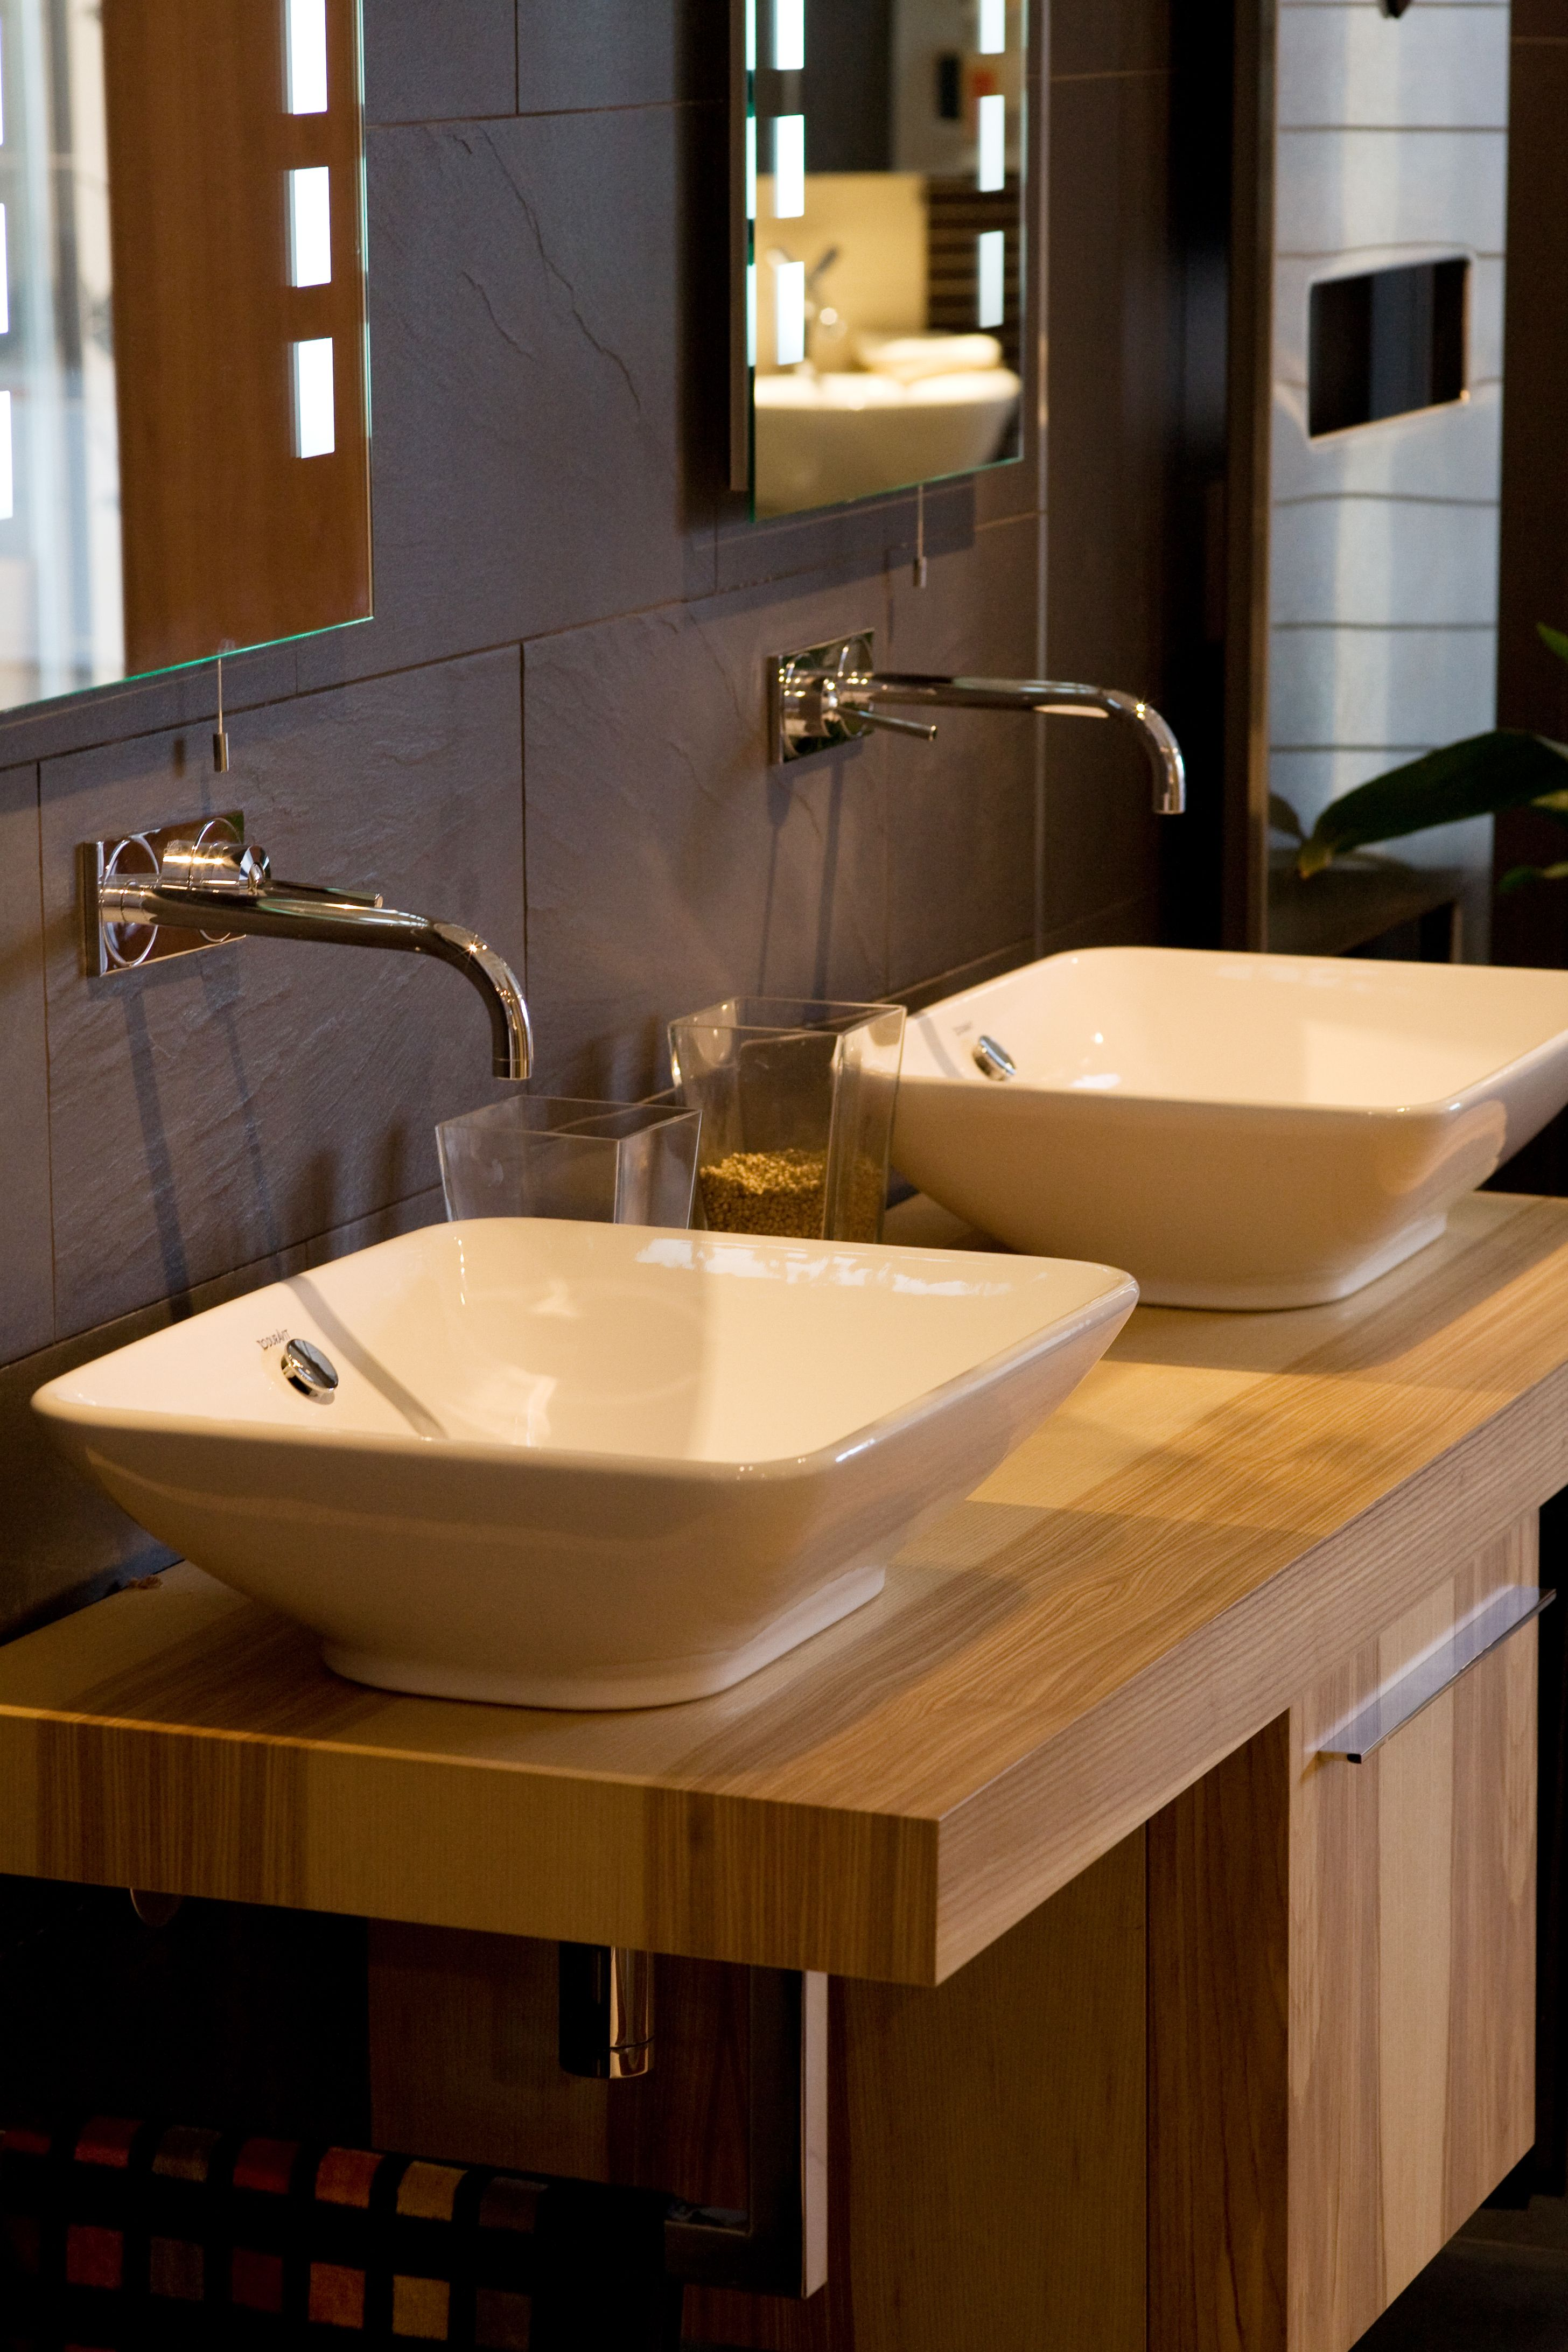 duravit fogo ash olive bacino basins formerly on display. Black Bedroom Furniture Sets. Home Design Ideas